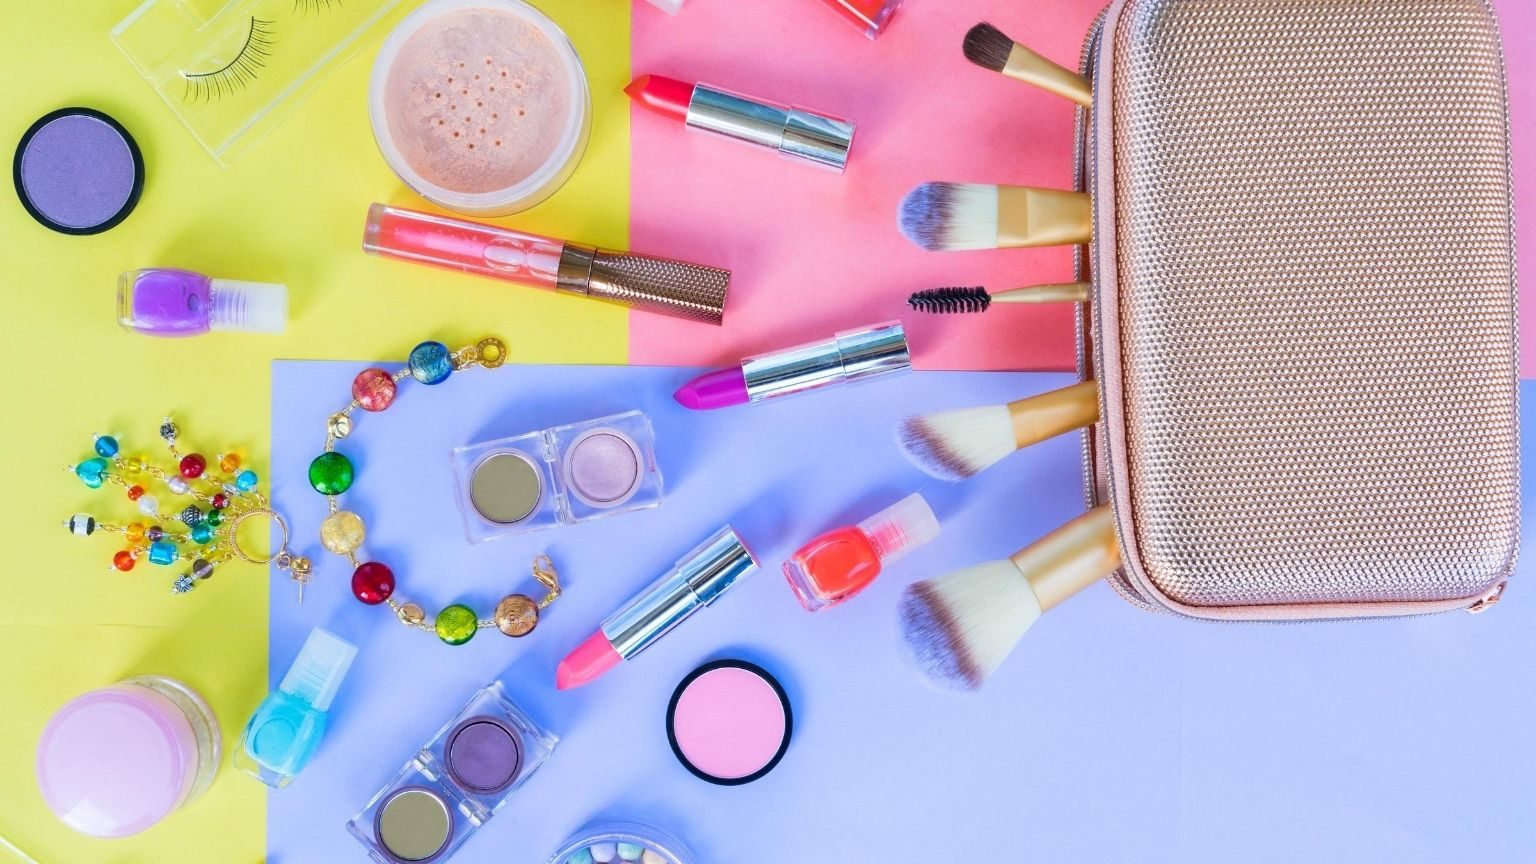 Beauty products spilling out of bag, colorful background